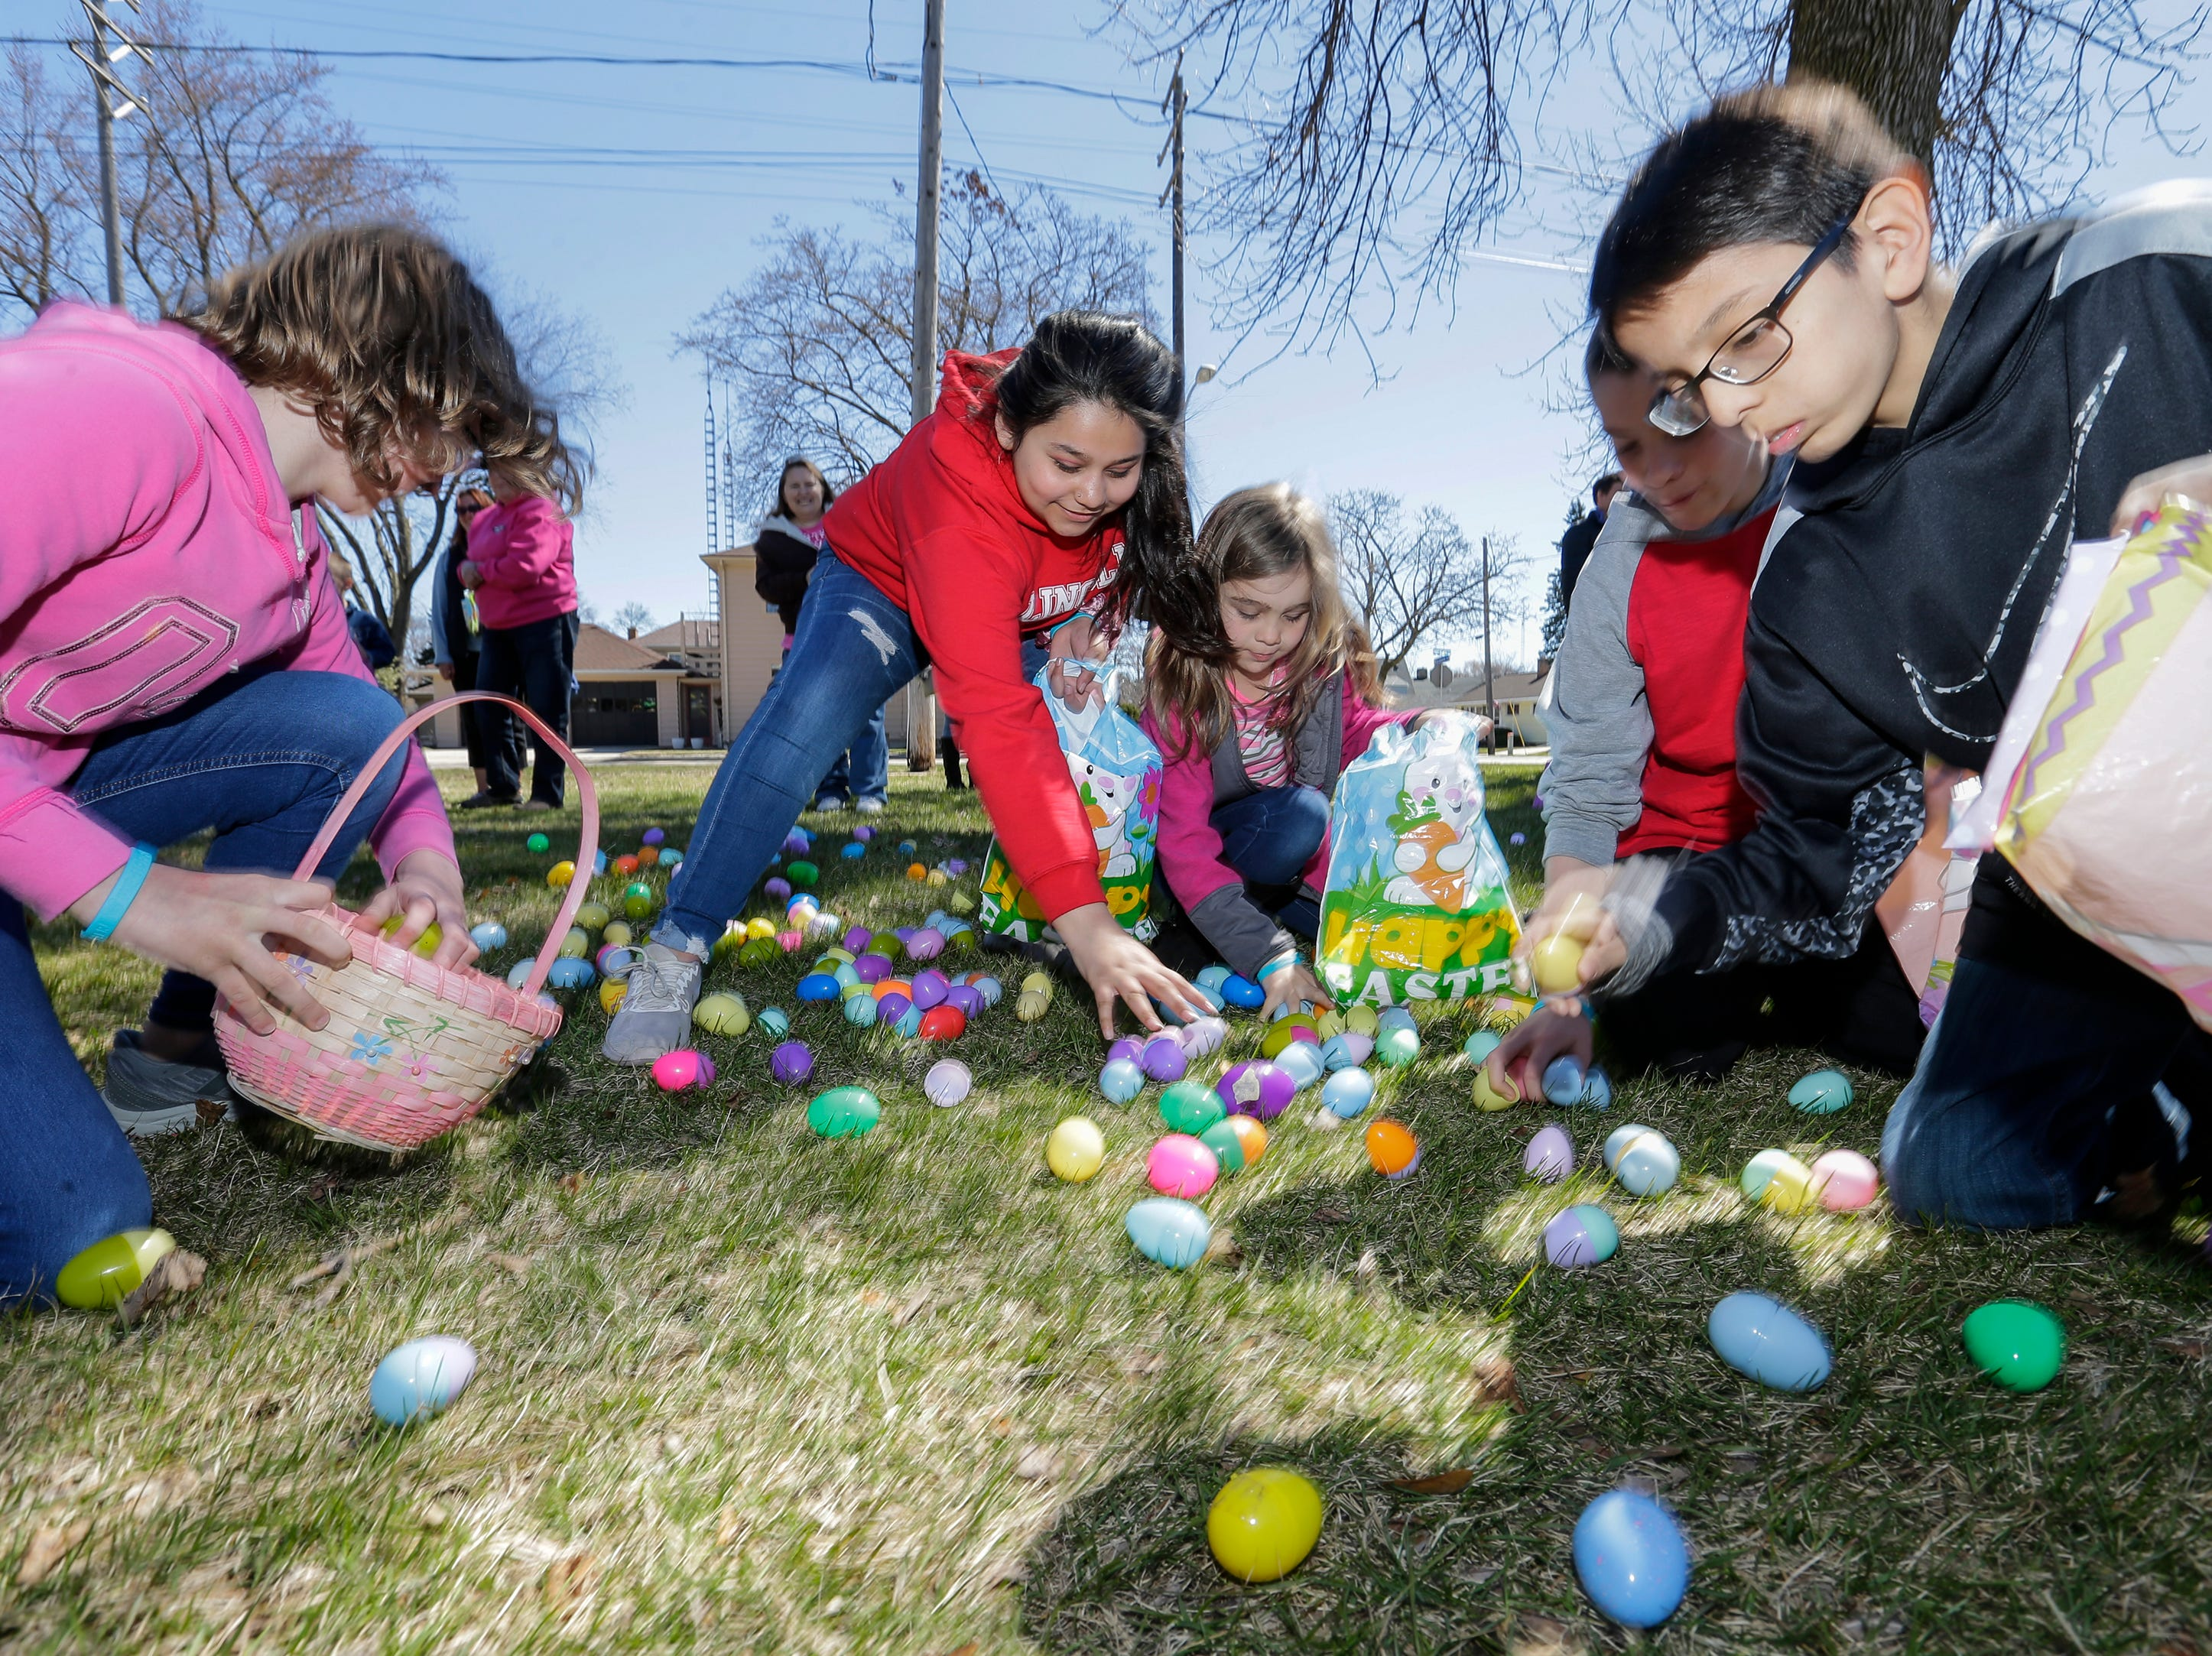 Children rush to gather plastic Easter eggs during the Easter Eggstravaganza at Citizen Park Saturday, April 20, 2019, in Manitowoc, Wis. Joshua Clark/USA TODAY NETWORK-Wisconsin